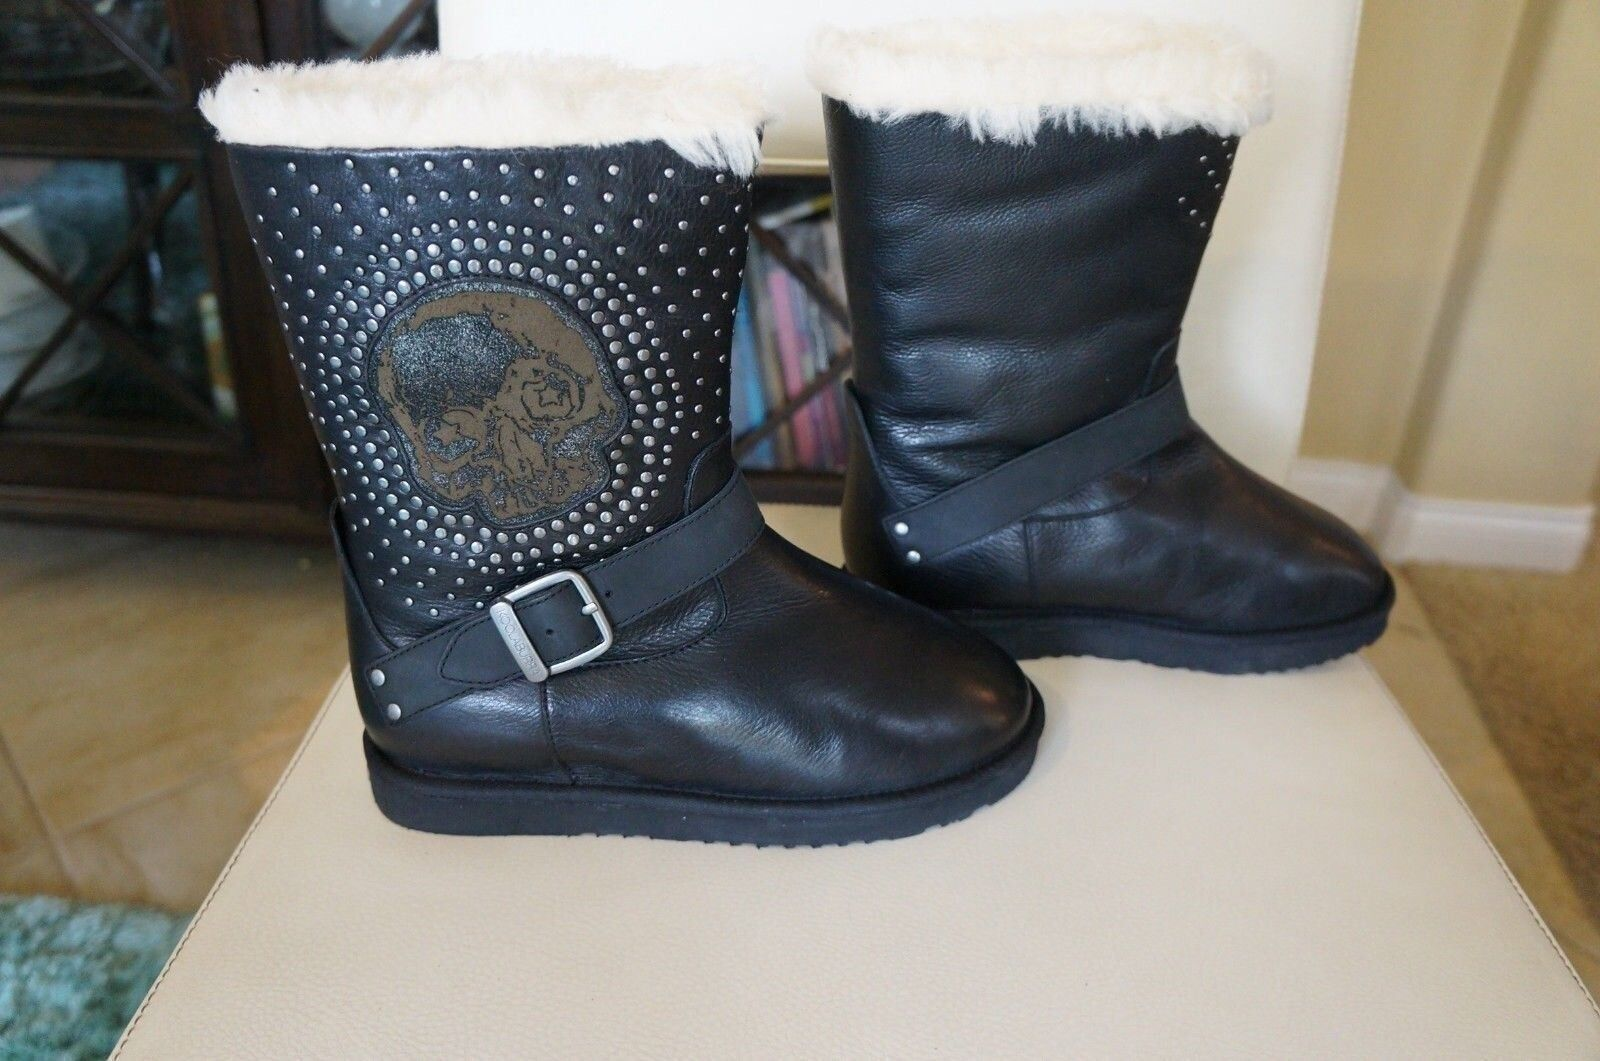 NEW KOOLABURRA Leather Helexa Moto Style 9  Tall Shearling Boots Black SZ 7  295